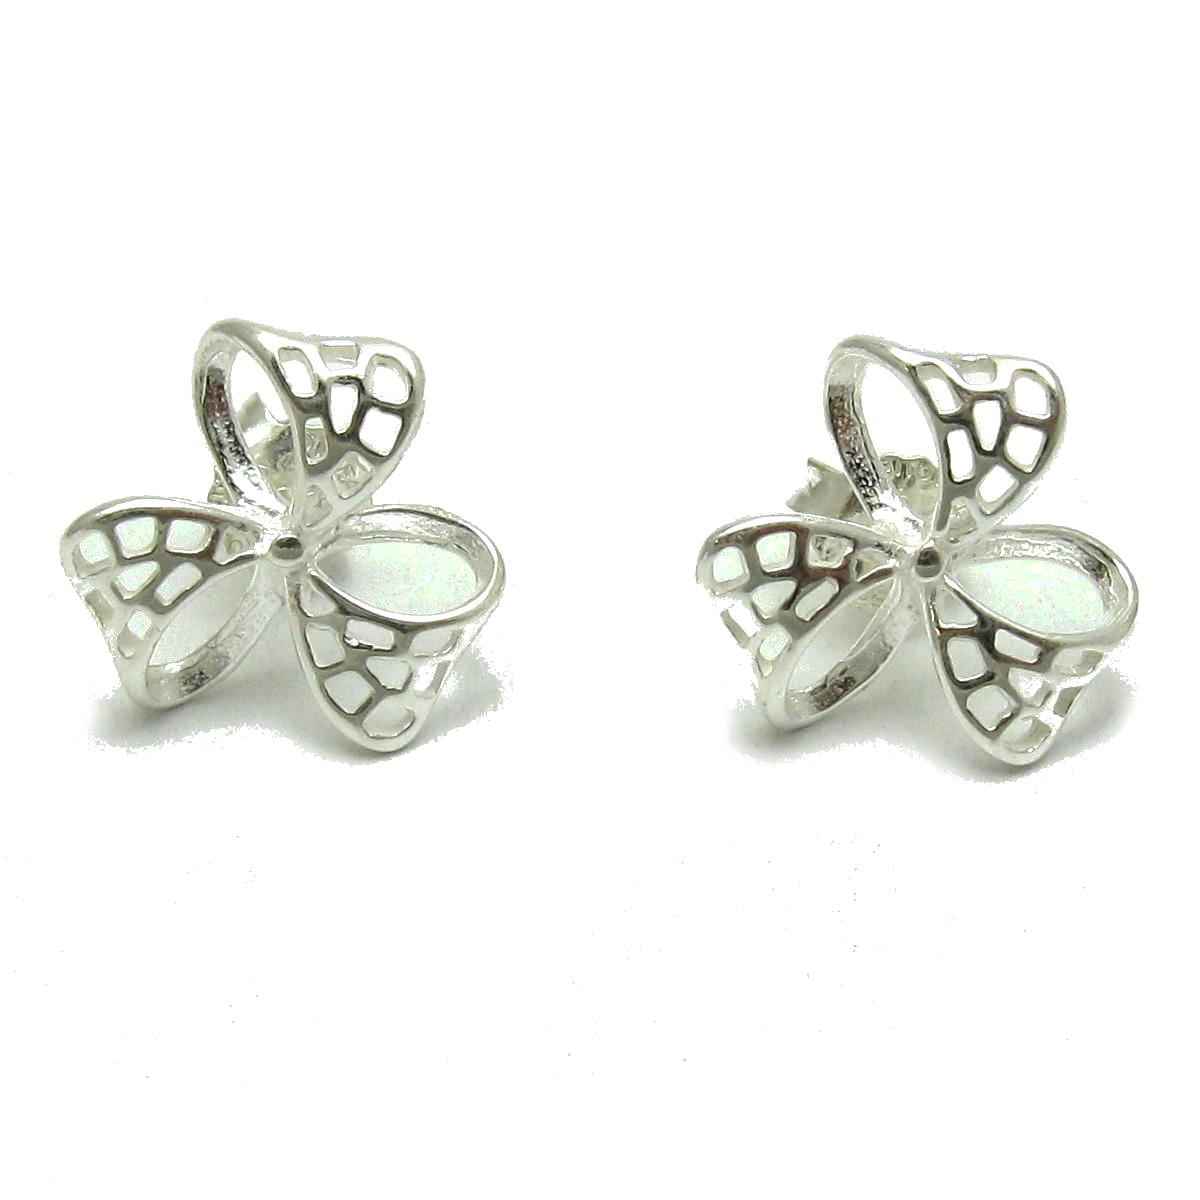 Silver earrings - E000683P